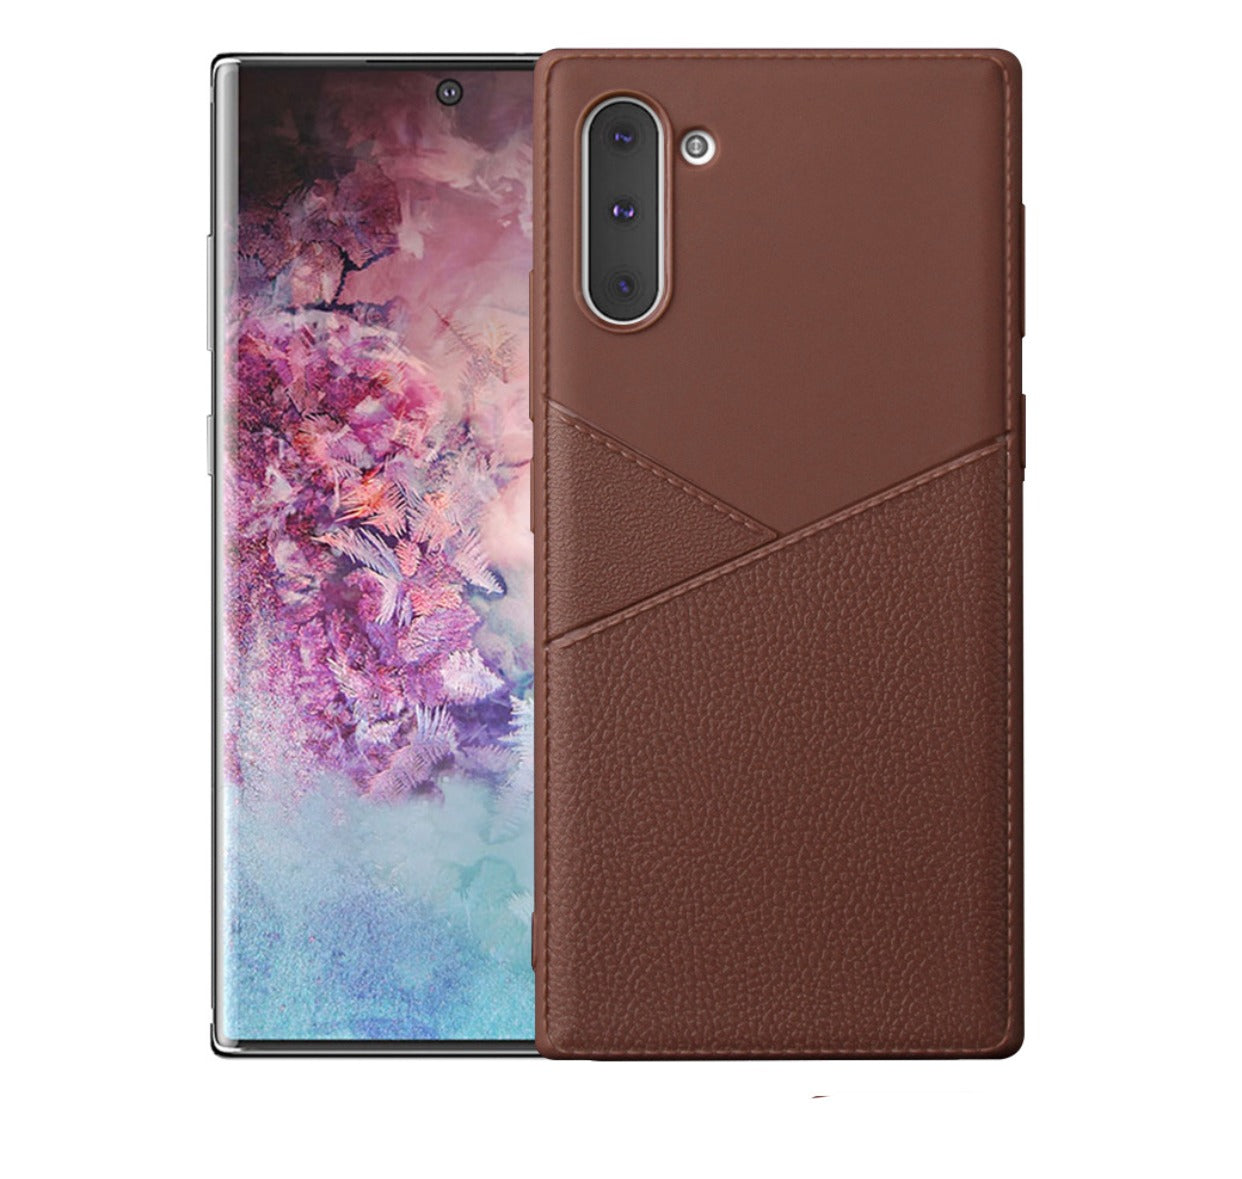 Platinum Design Leather Case Super Thin for Samsung Galaxy Note 10